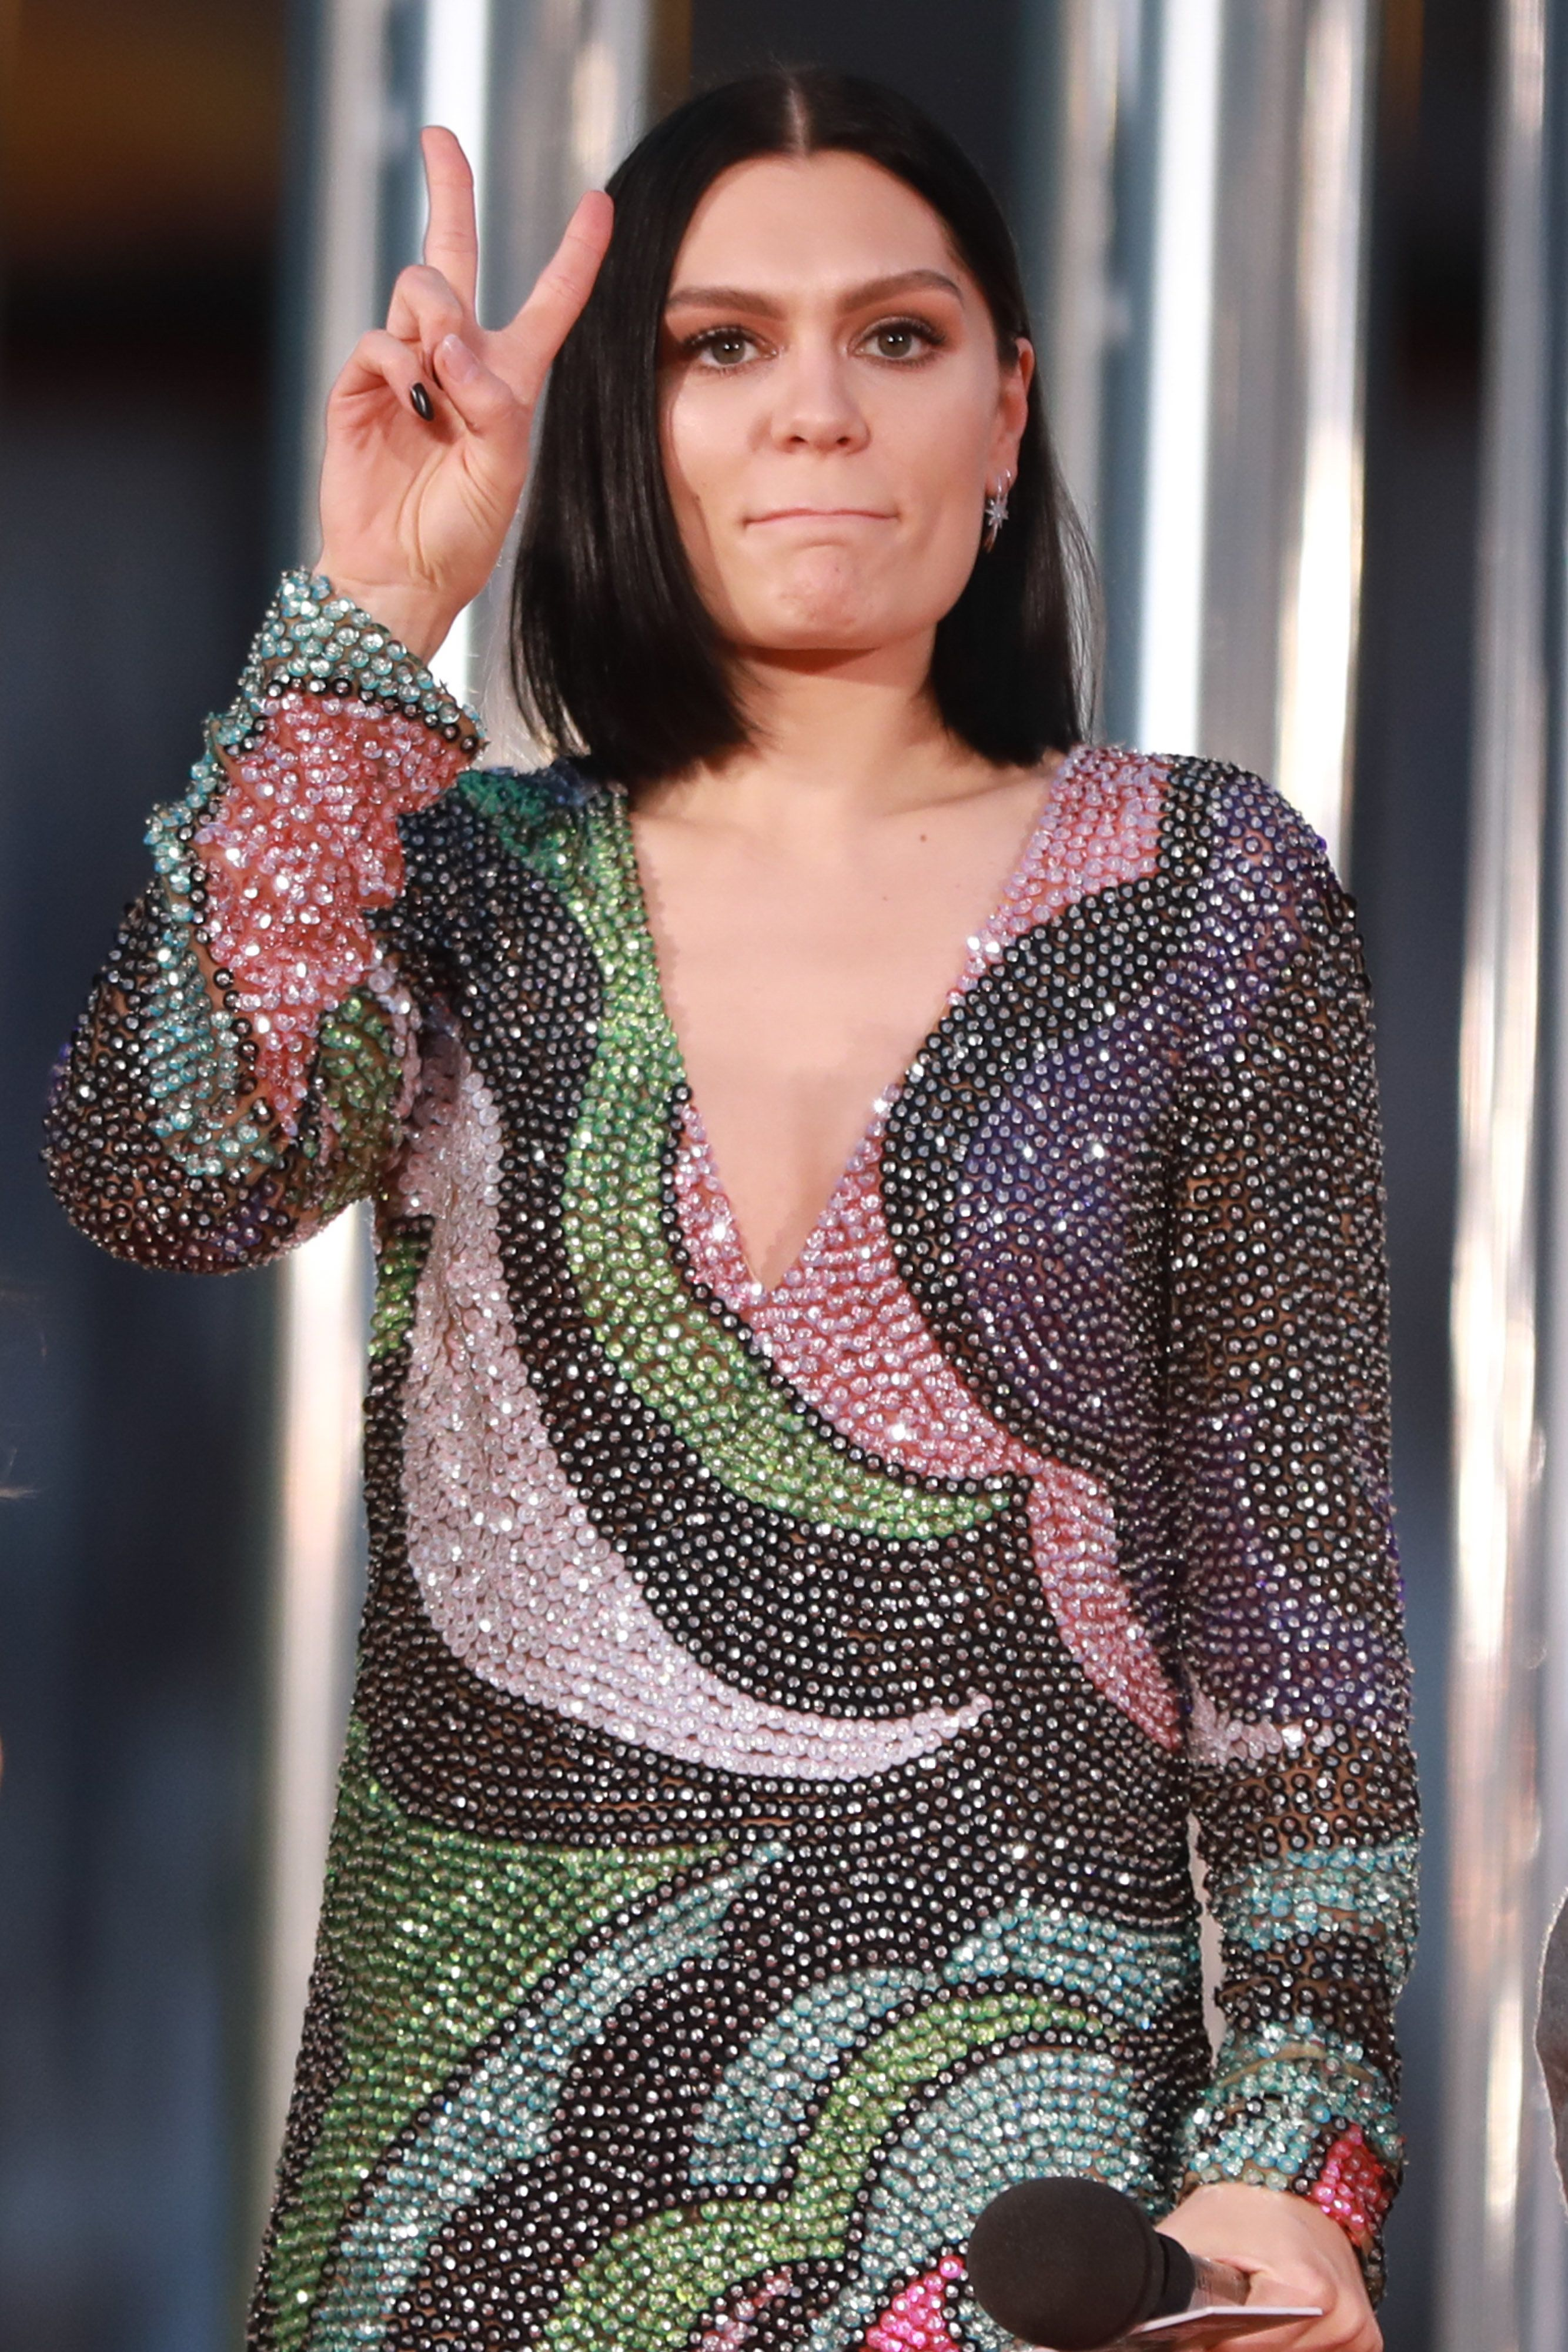 Jessie J Has Just Won The Chinese Version Of 'X Factor' (Yes, You Did Read That Correctly)